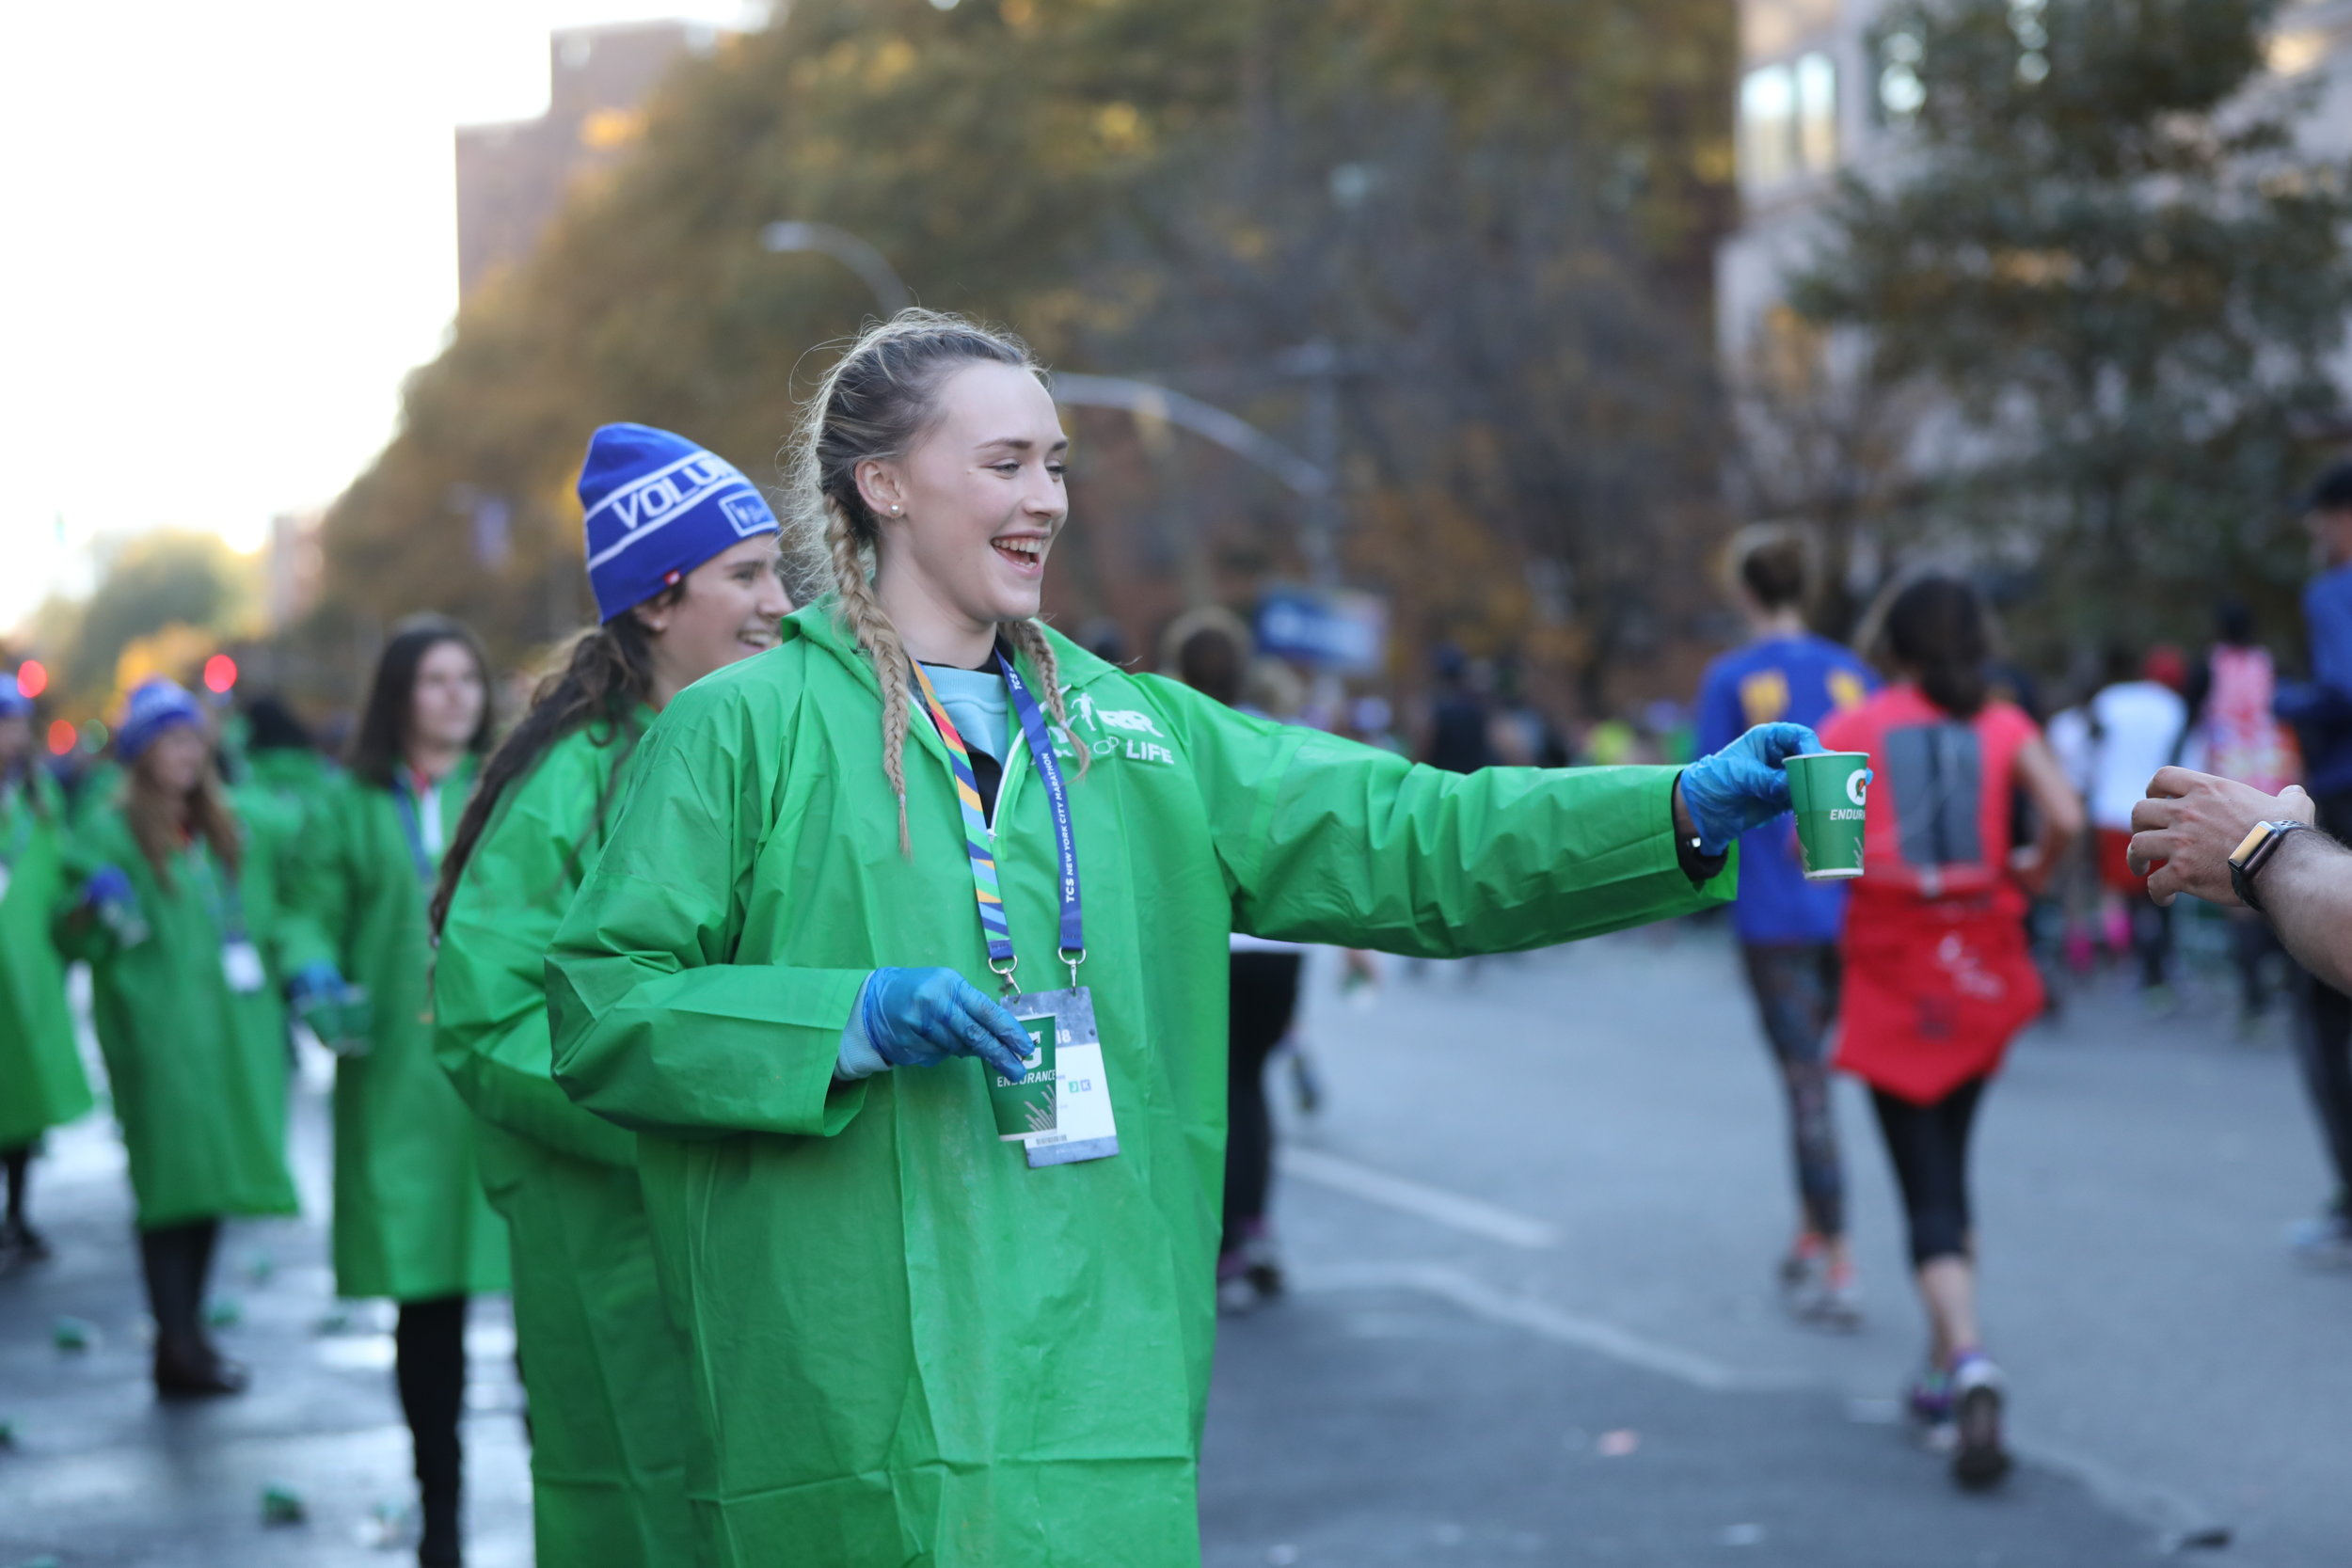 New York City Marathon volunteers handing out water at an aid station in Manhattan